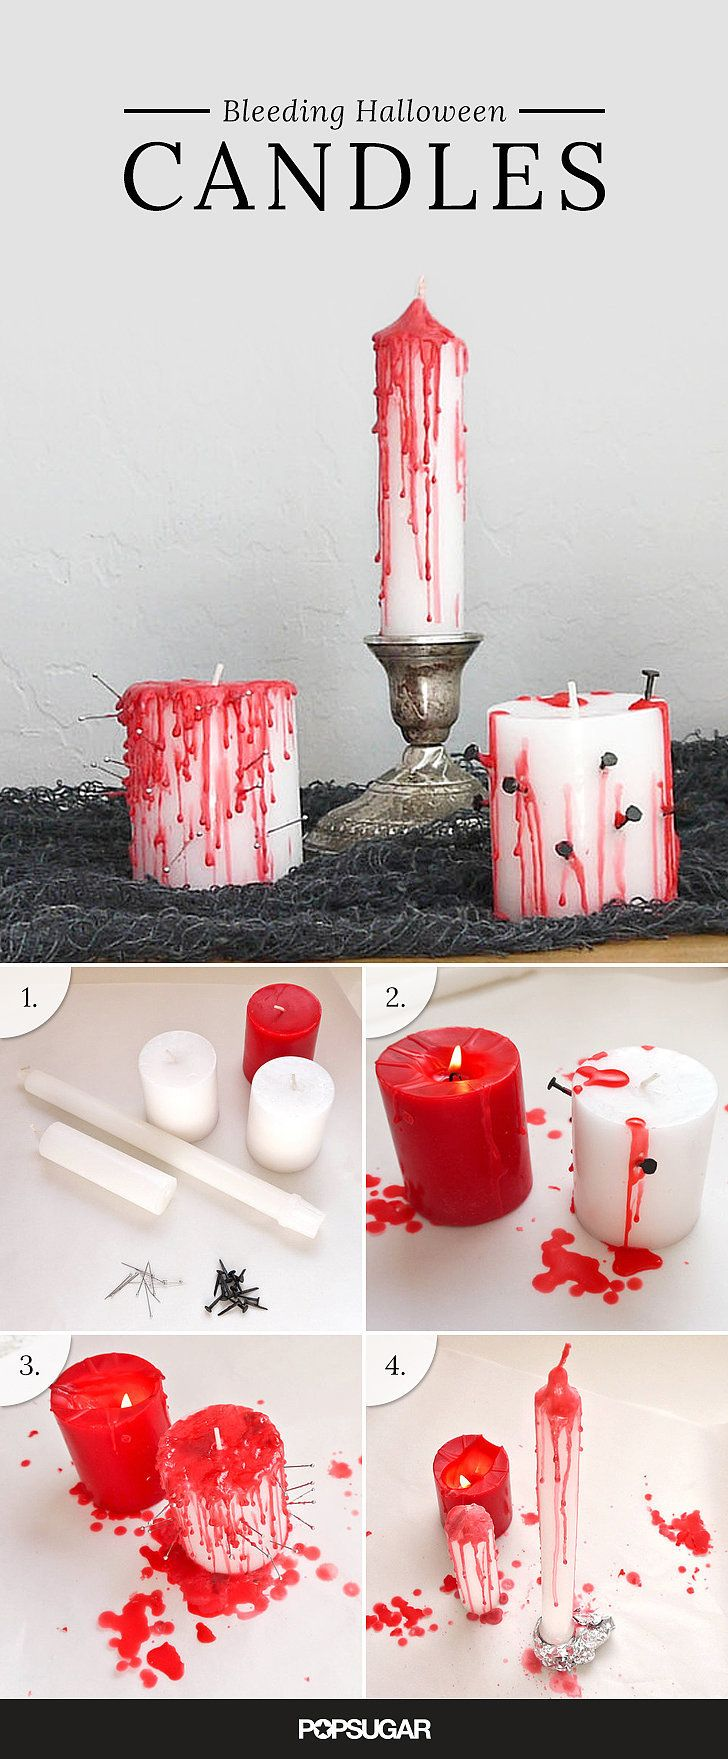 Oh the Gore! DIY Bleeding Halloween Candles #diyhalloweendéco